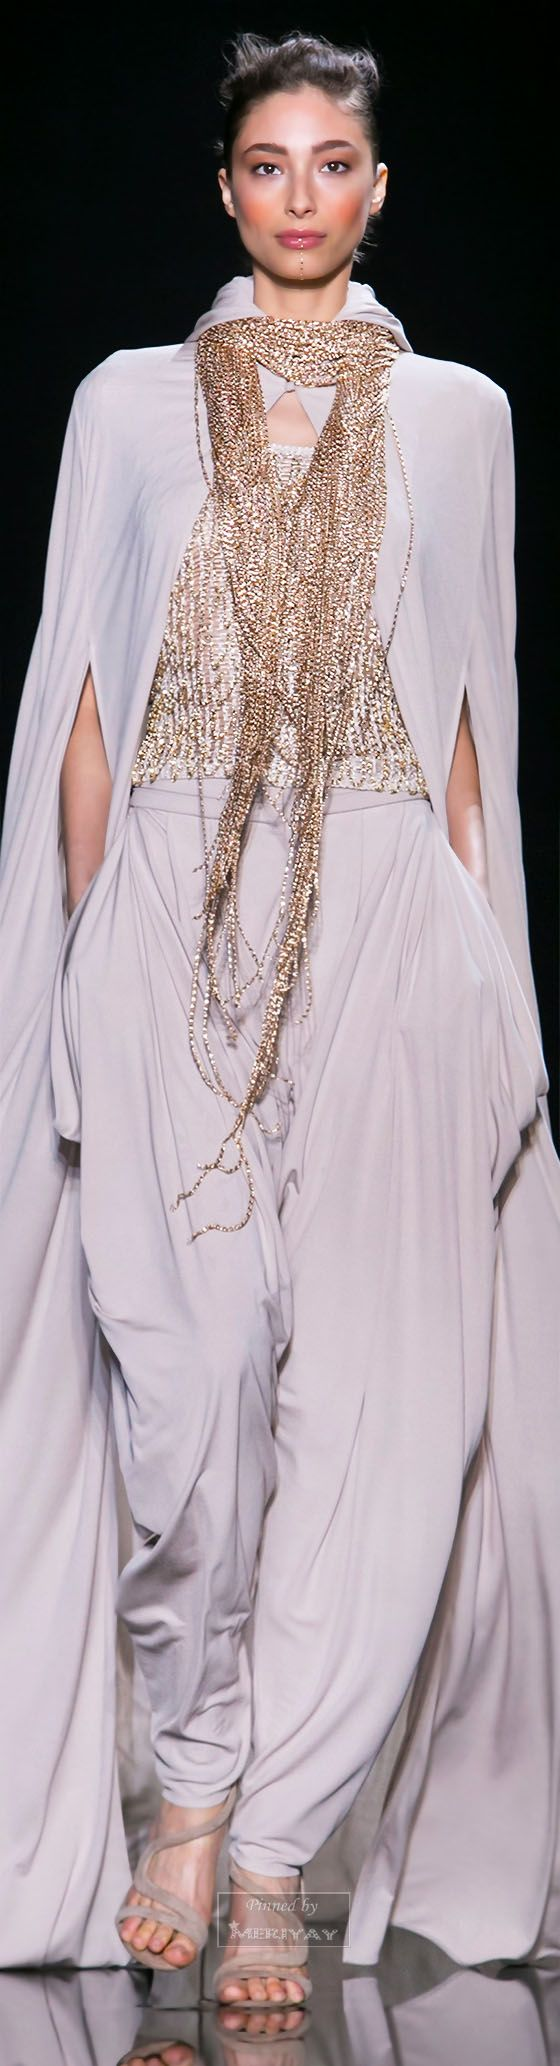 Loris Azzaro. Spring 2015 Couture--In an apparent triumph for Armani, draped and flowing looks are becoming more prevalent this spring.